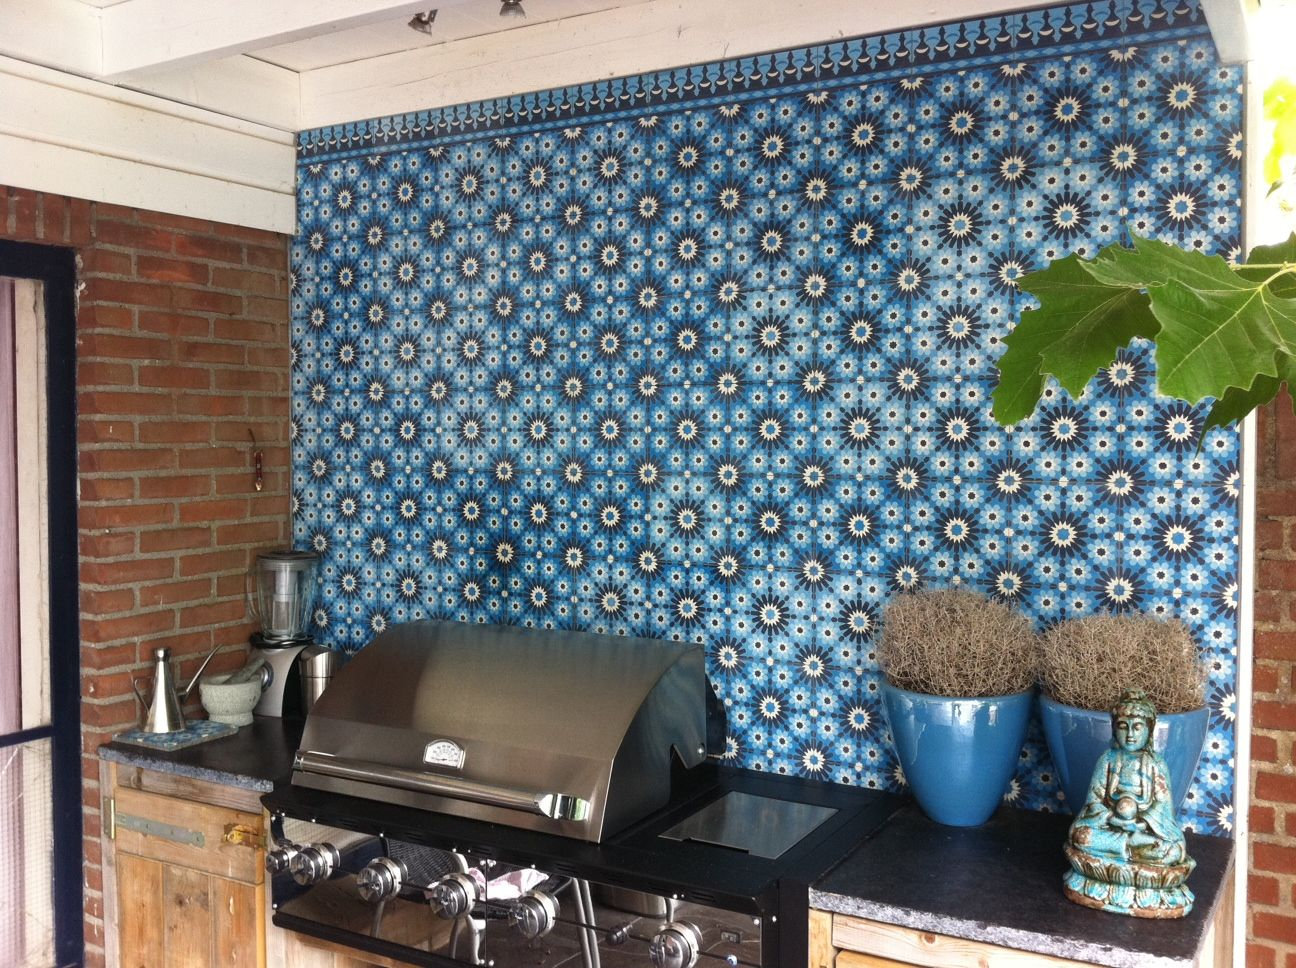 Outdoor kitchen with cement tiles azule 13 on the wall for Cement tiles for kitchen